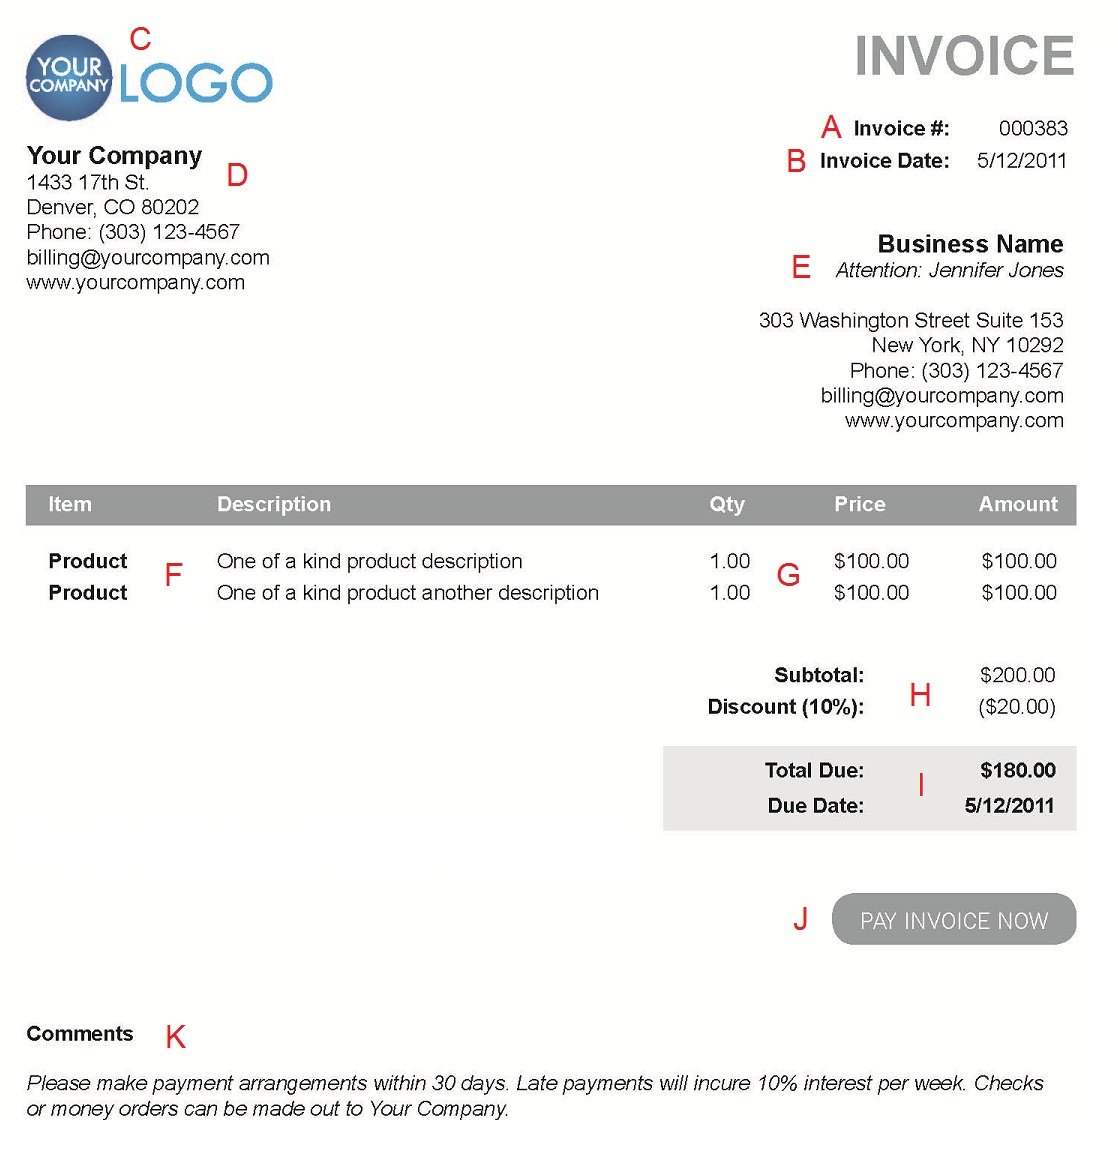 Coachoutletonlineplusus  Gorgeous The  Different Sections Of An Electronic Payment Invoice With Exquisite A  With Appealing Wordpress Invoice Plugin Also Template For Invoices In Addition Google Docs Templates Invoice And Best Invoice Template As Well As Invoice Database Additionally Blank Auto Repair Invoice From Paysimplecom With Coachoutletonlineplusus  Exquisite The  Different Sections Of An Electronic Payment Invoice With Appealing A  And Gorgeous Wordpress Invoice Plugin Also Template For Invoices In Addition Google Docs Templates Invoice From Paysimplecom